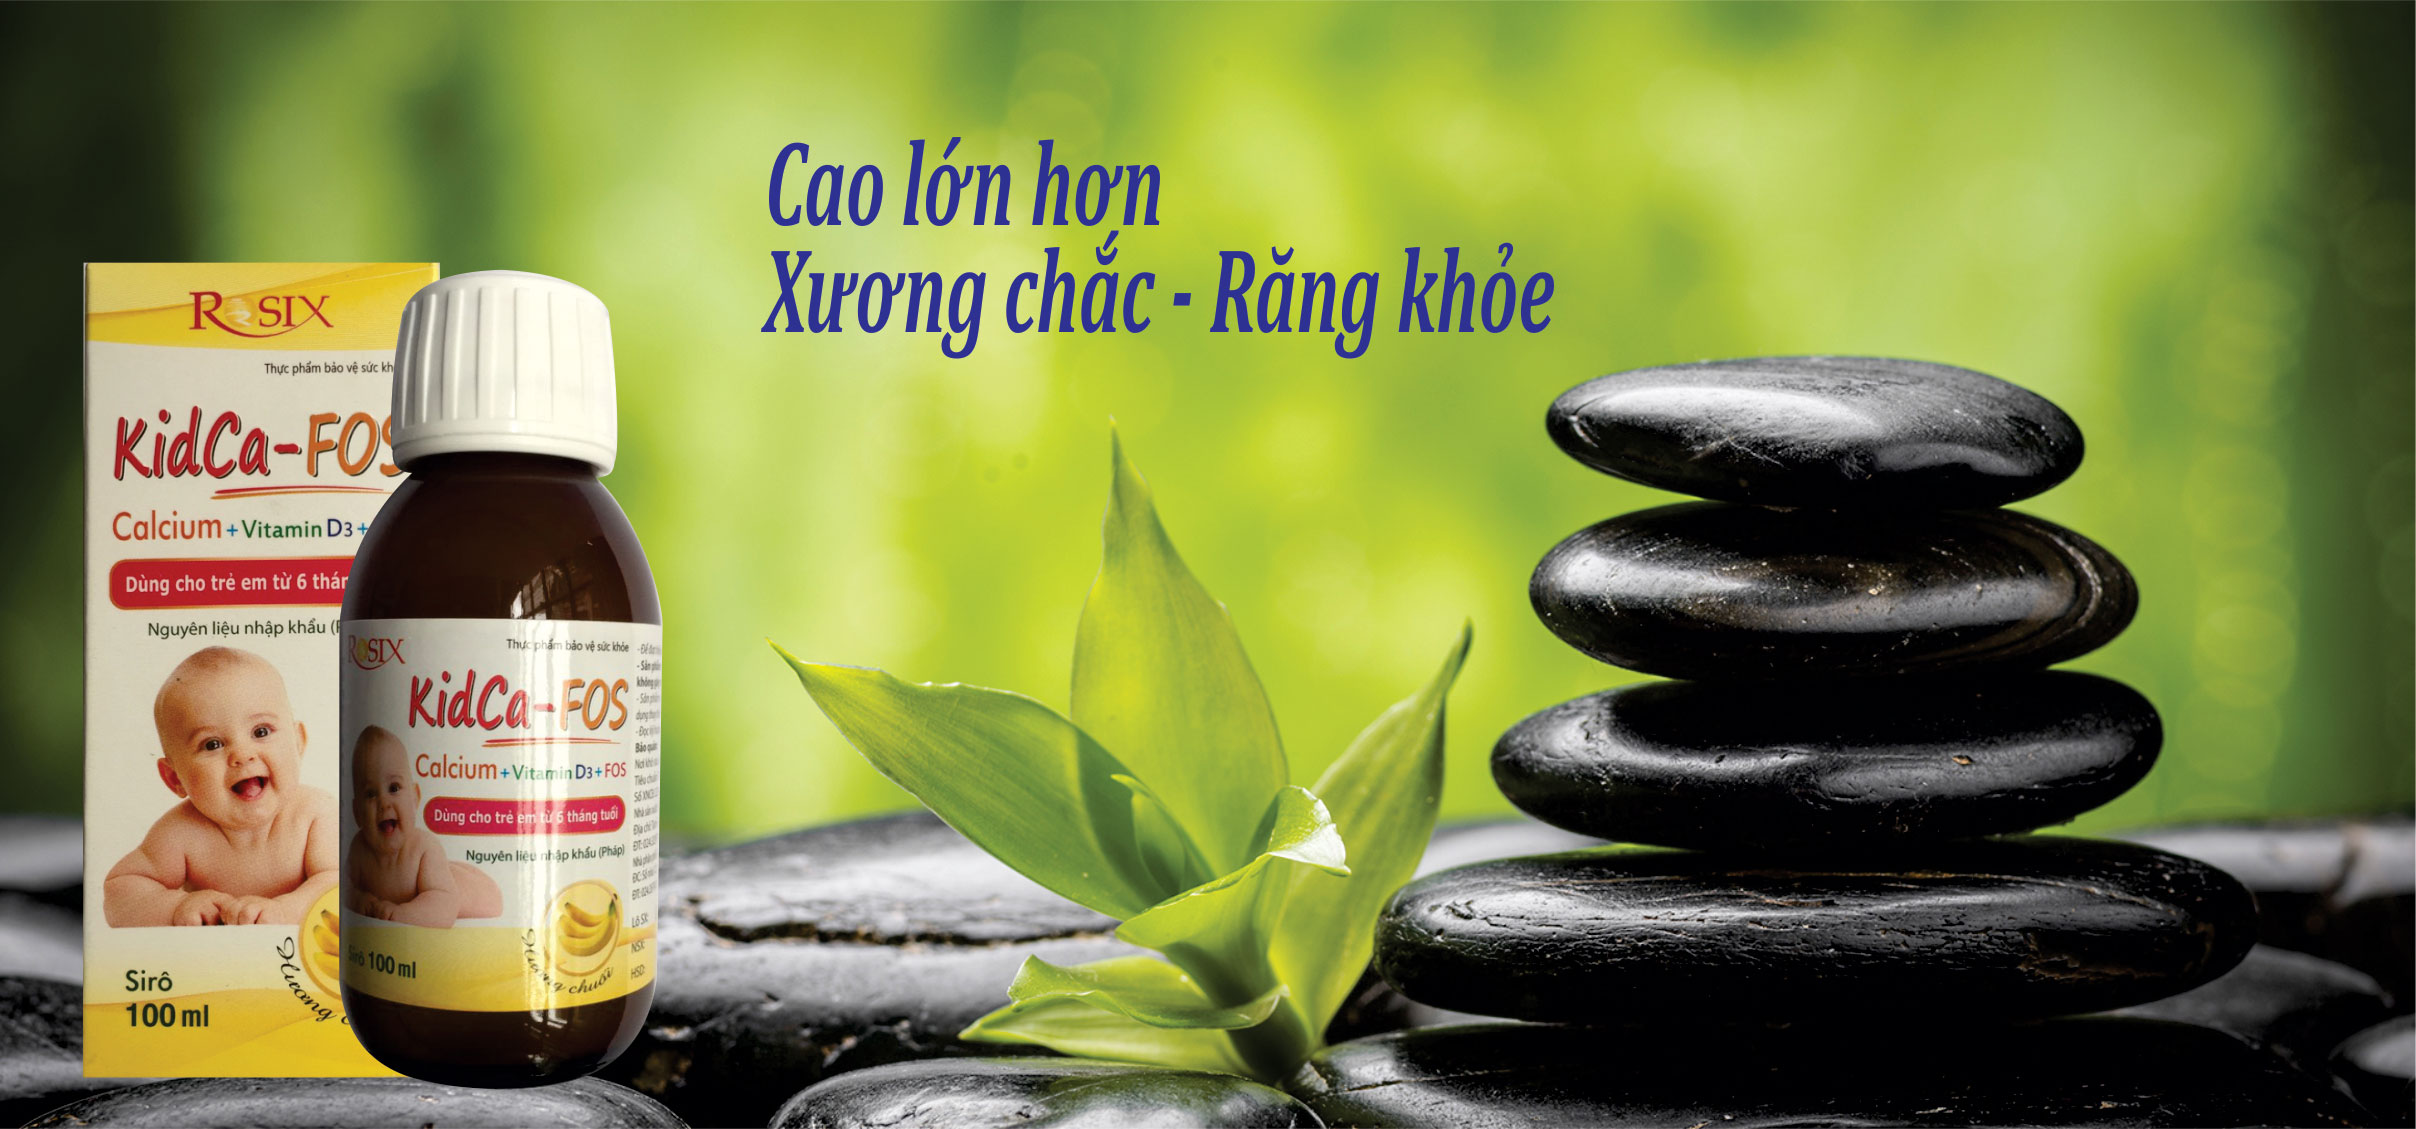 http://rosix.com.vn/tp-bao-ve-suc-khoe-kidca-fos-bo-sung-canxi-cho-tre-tu-6-thang-tuoi.c